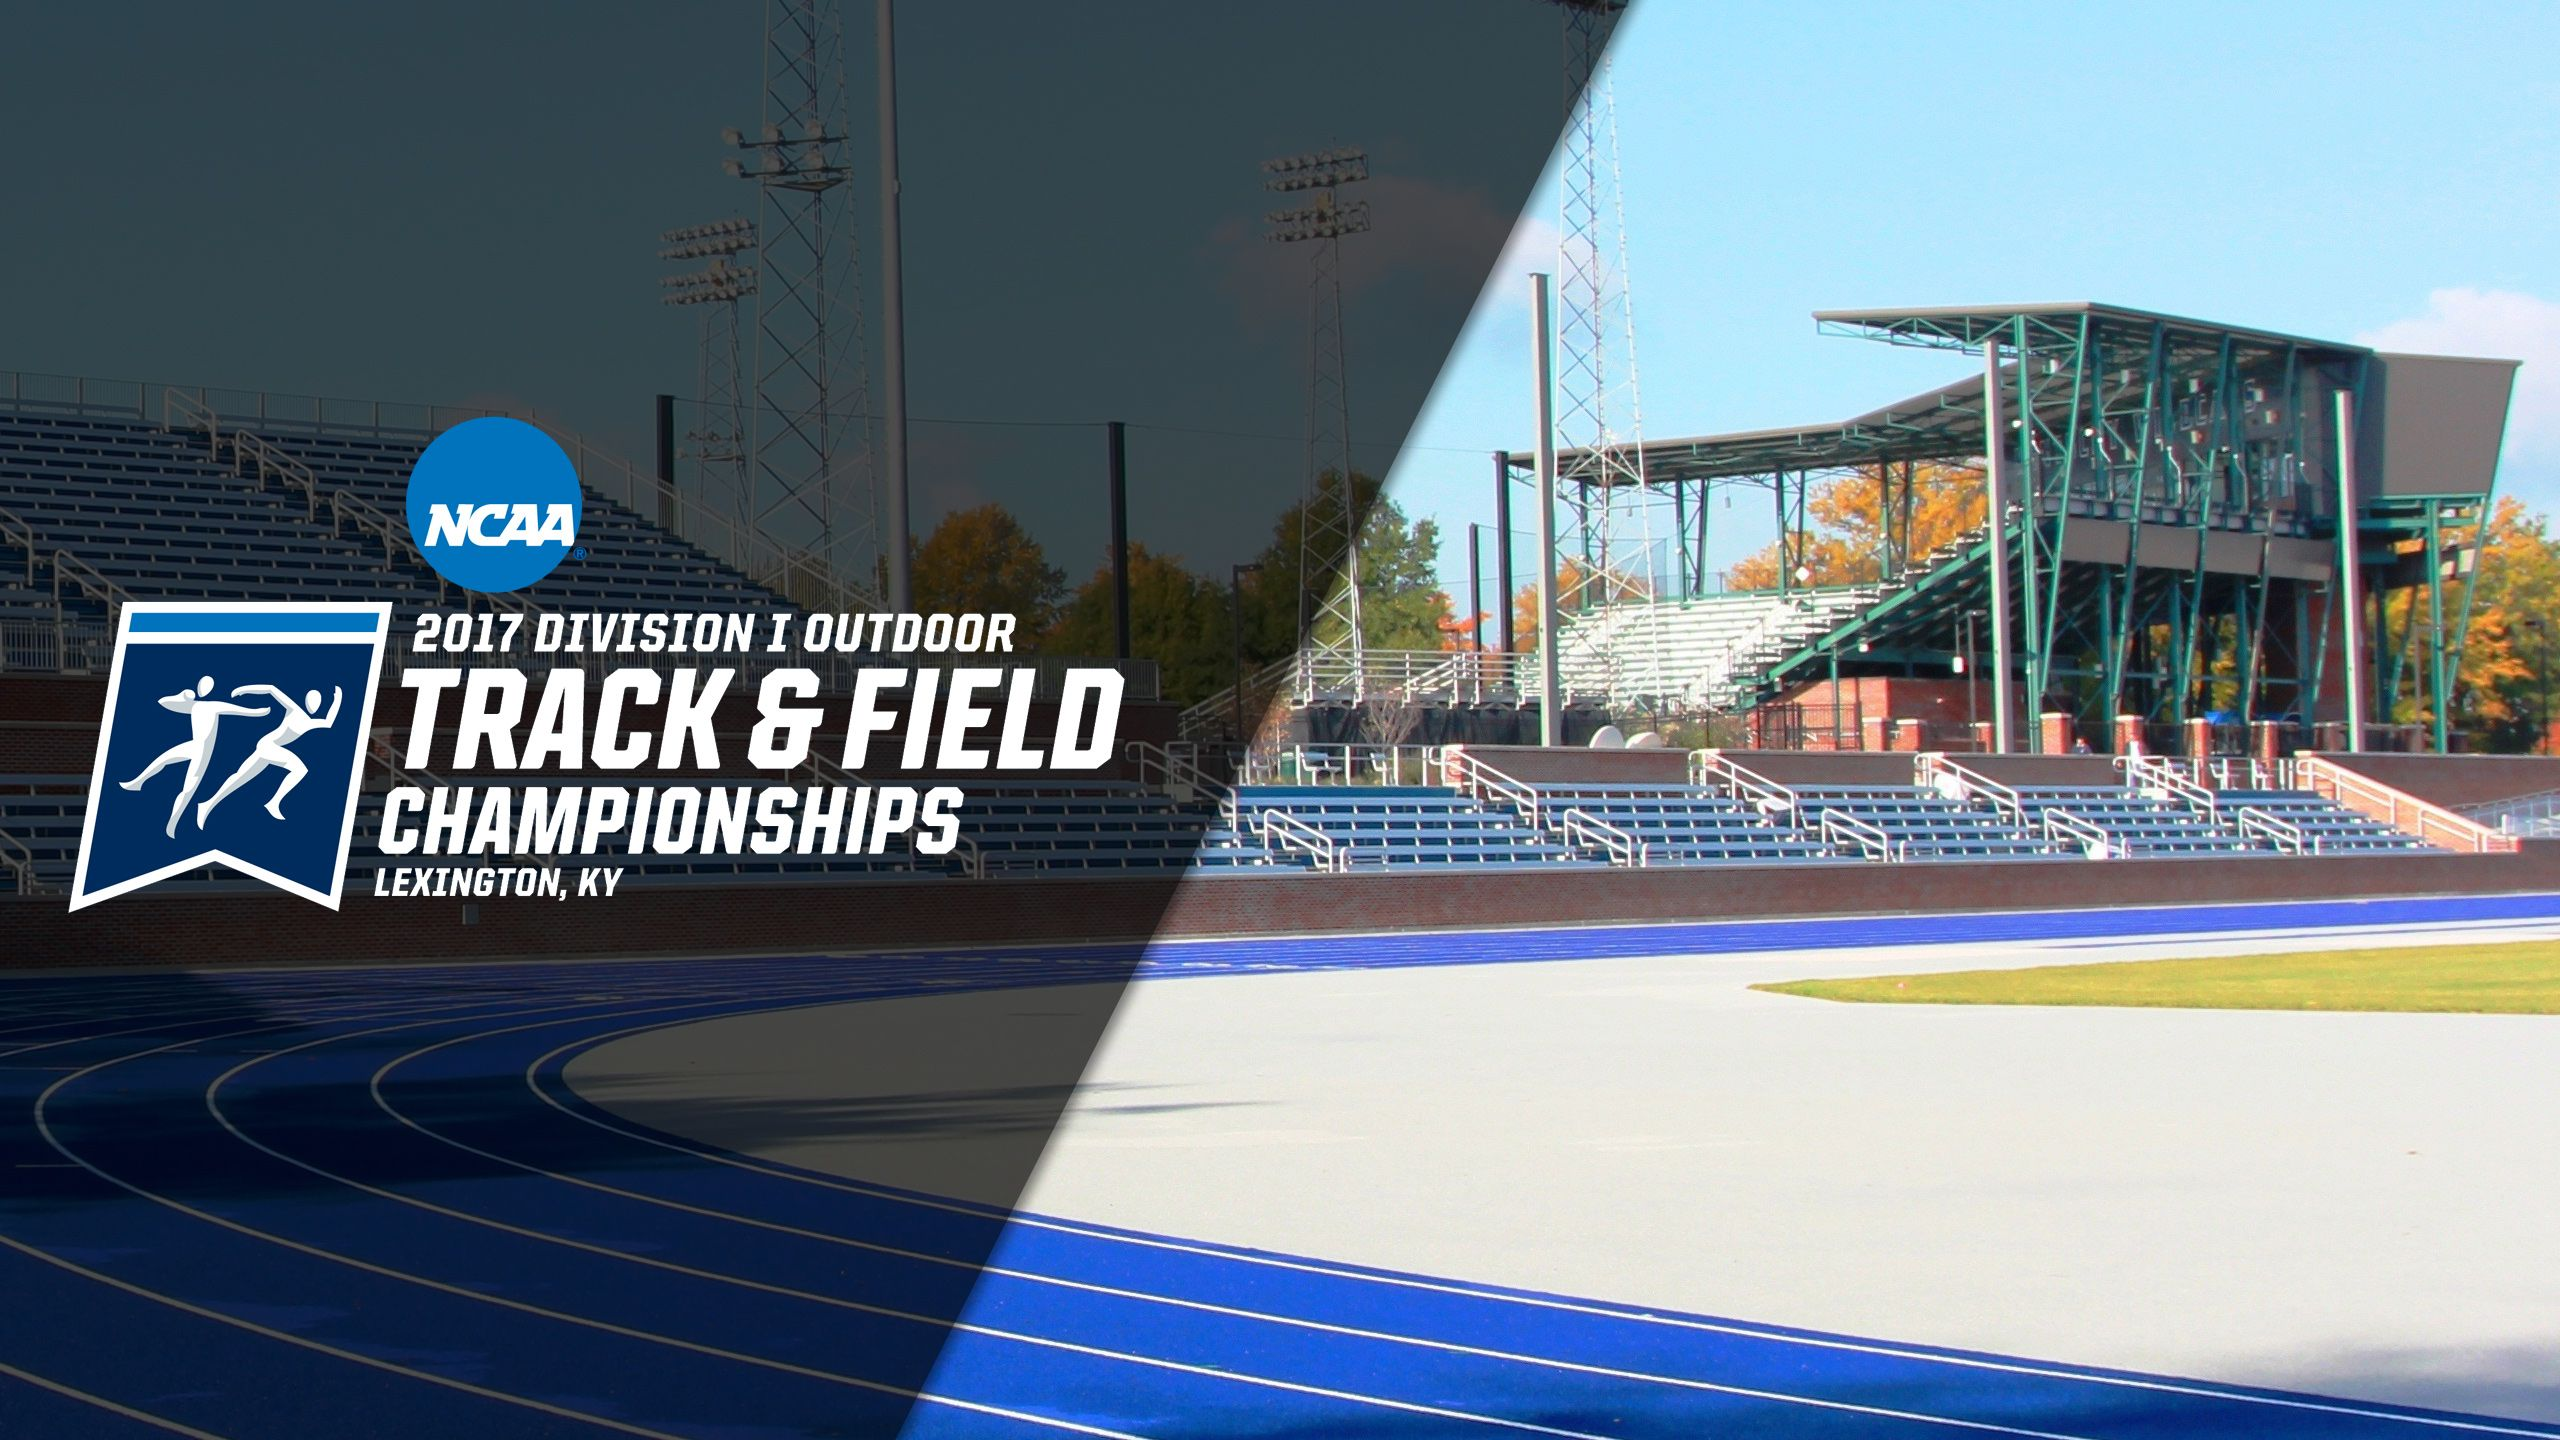 2017 NCAA Outdoor Track & Field Championship